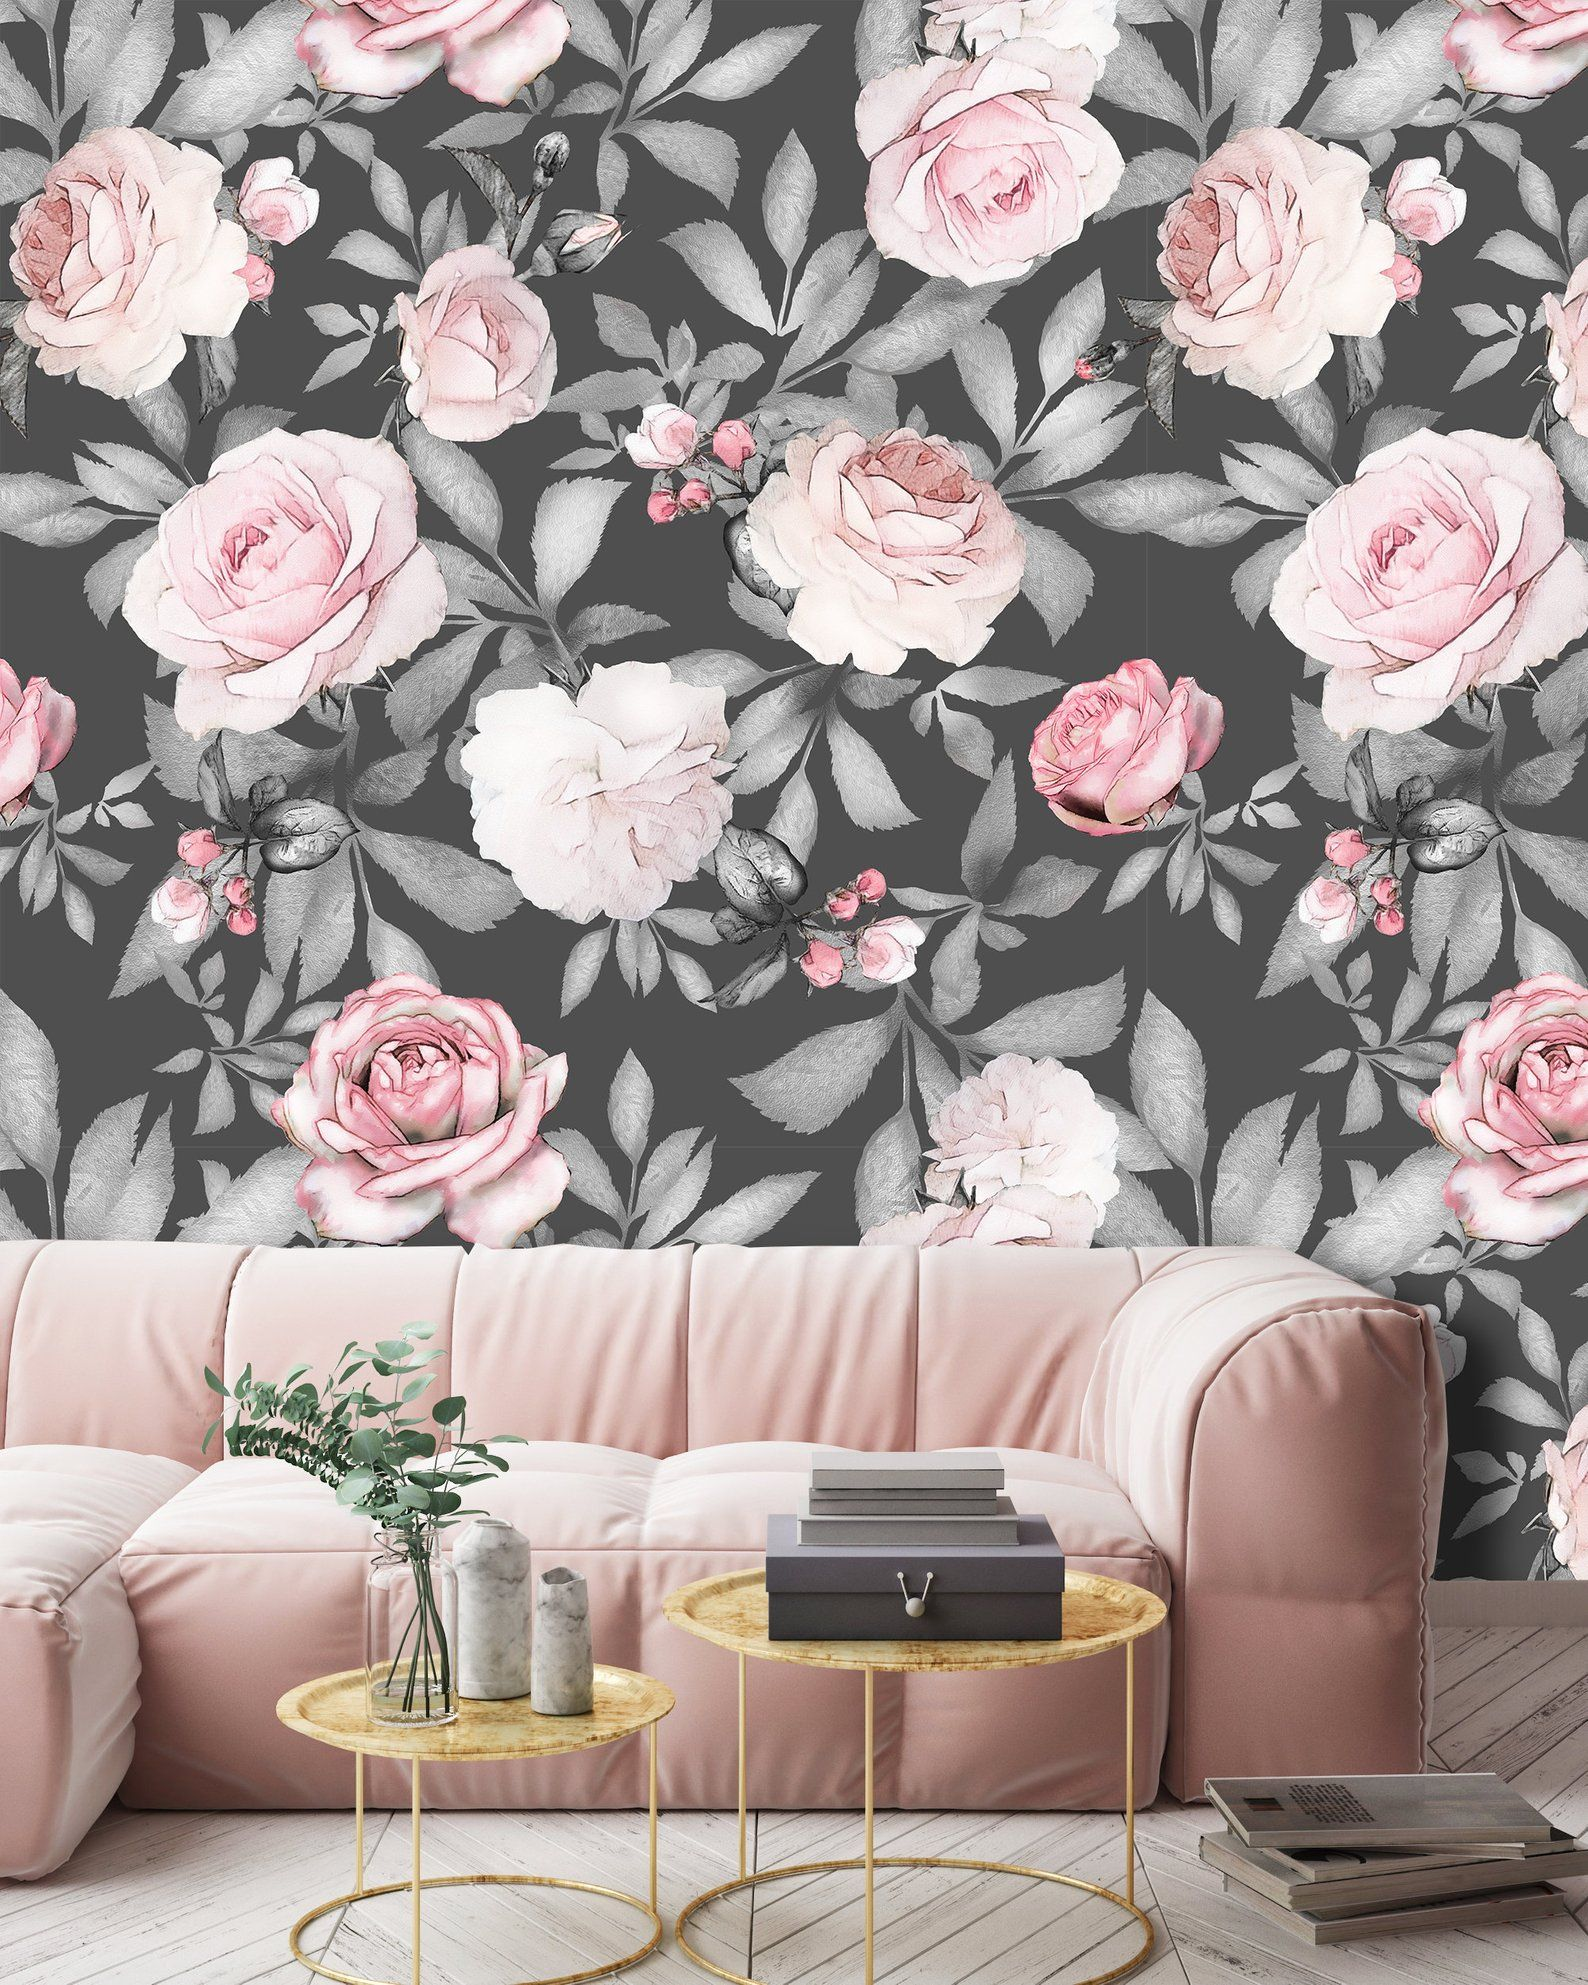 Removable Peel And Stick Wallpaper Watercolor Floral Peony